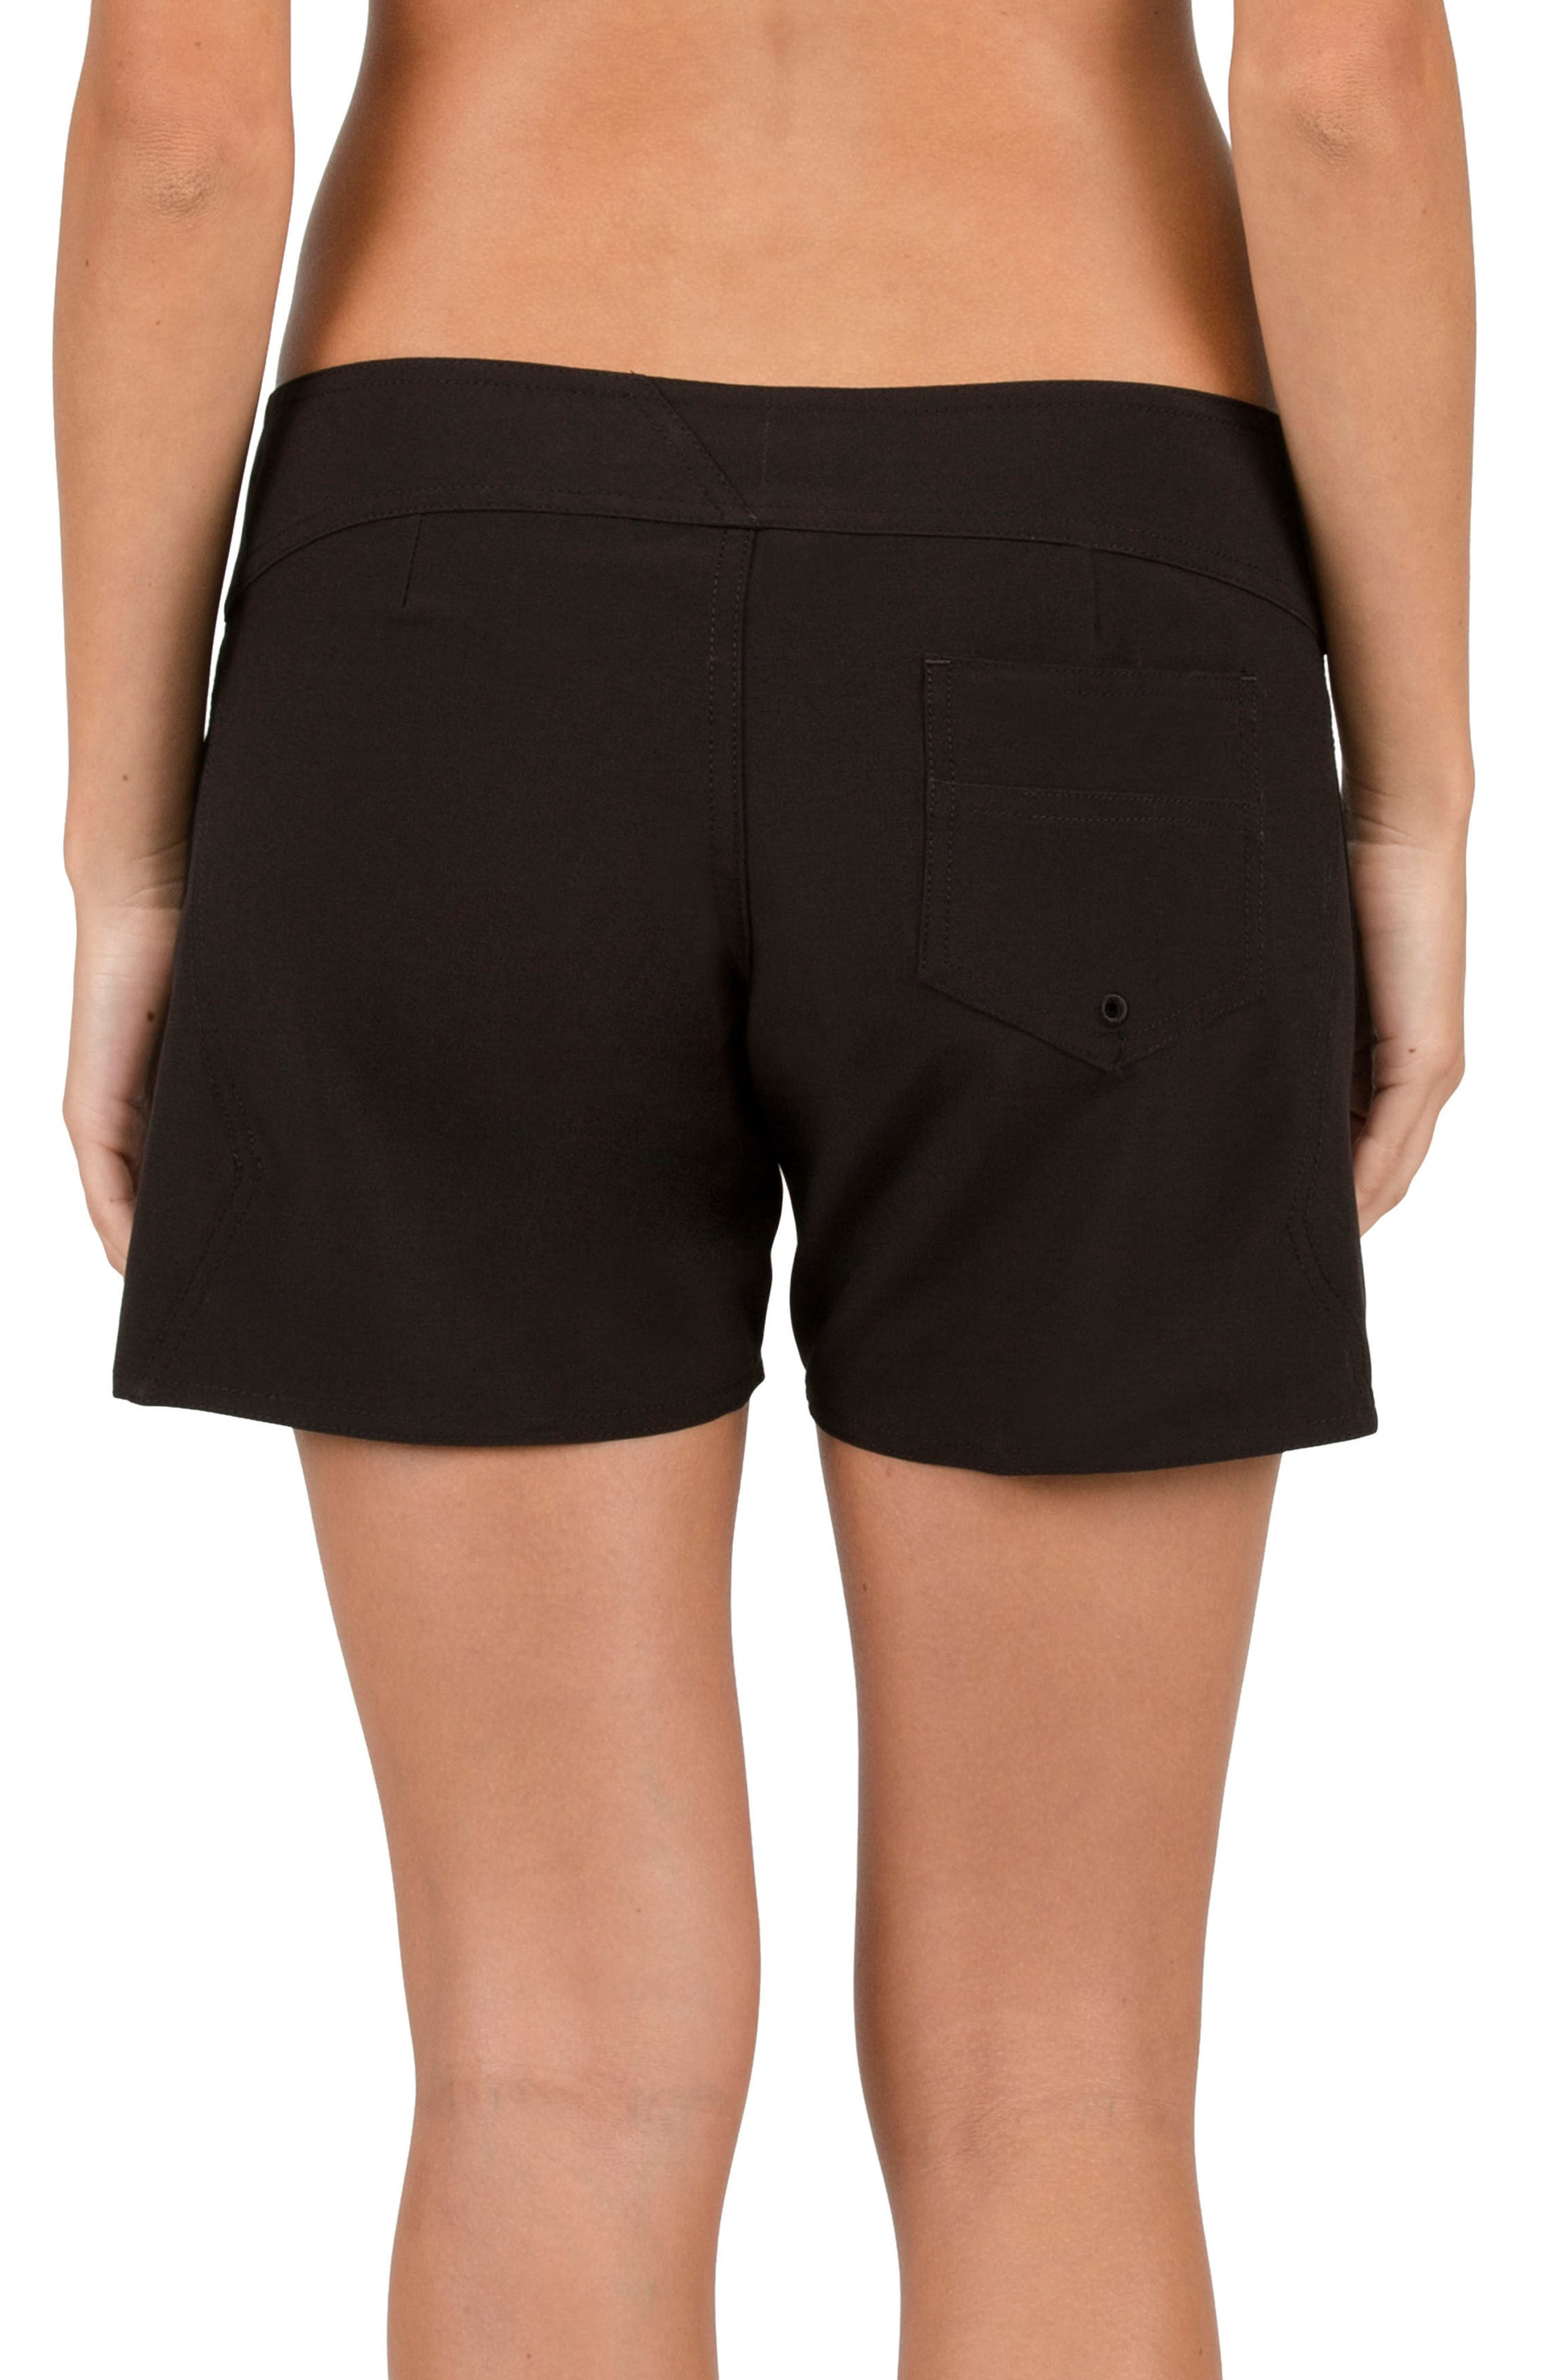 Simply Solid 5-Inch Board Shorts,                             Alternate thumbnail 2, color,